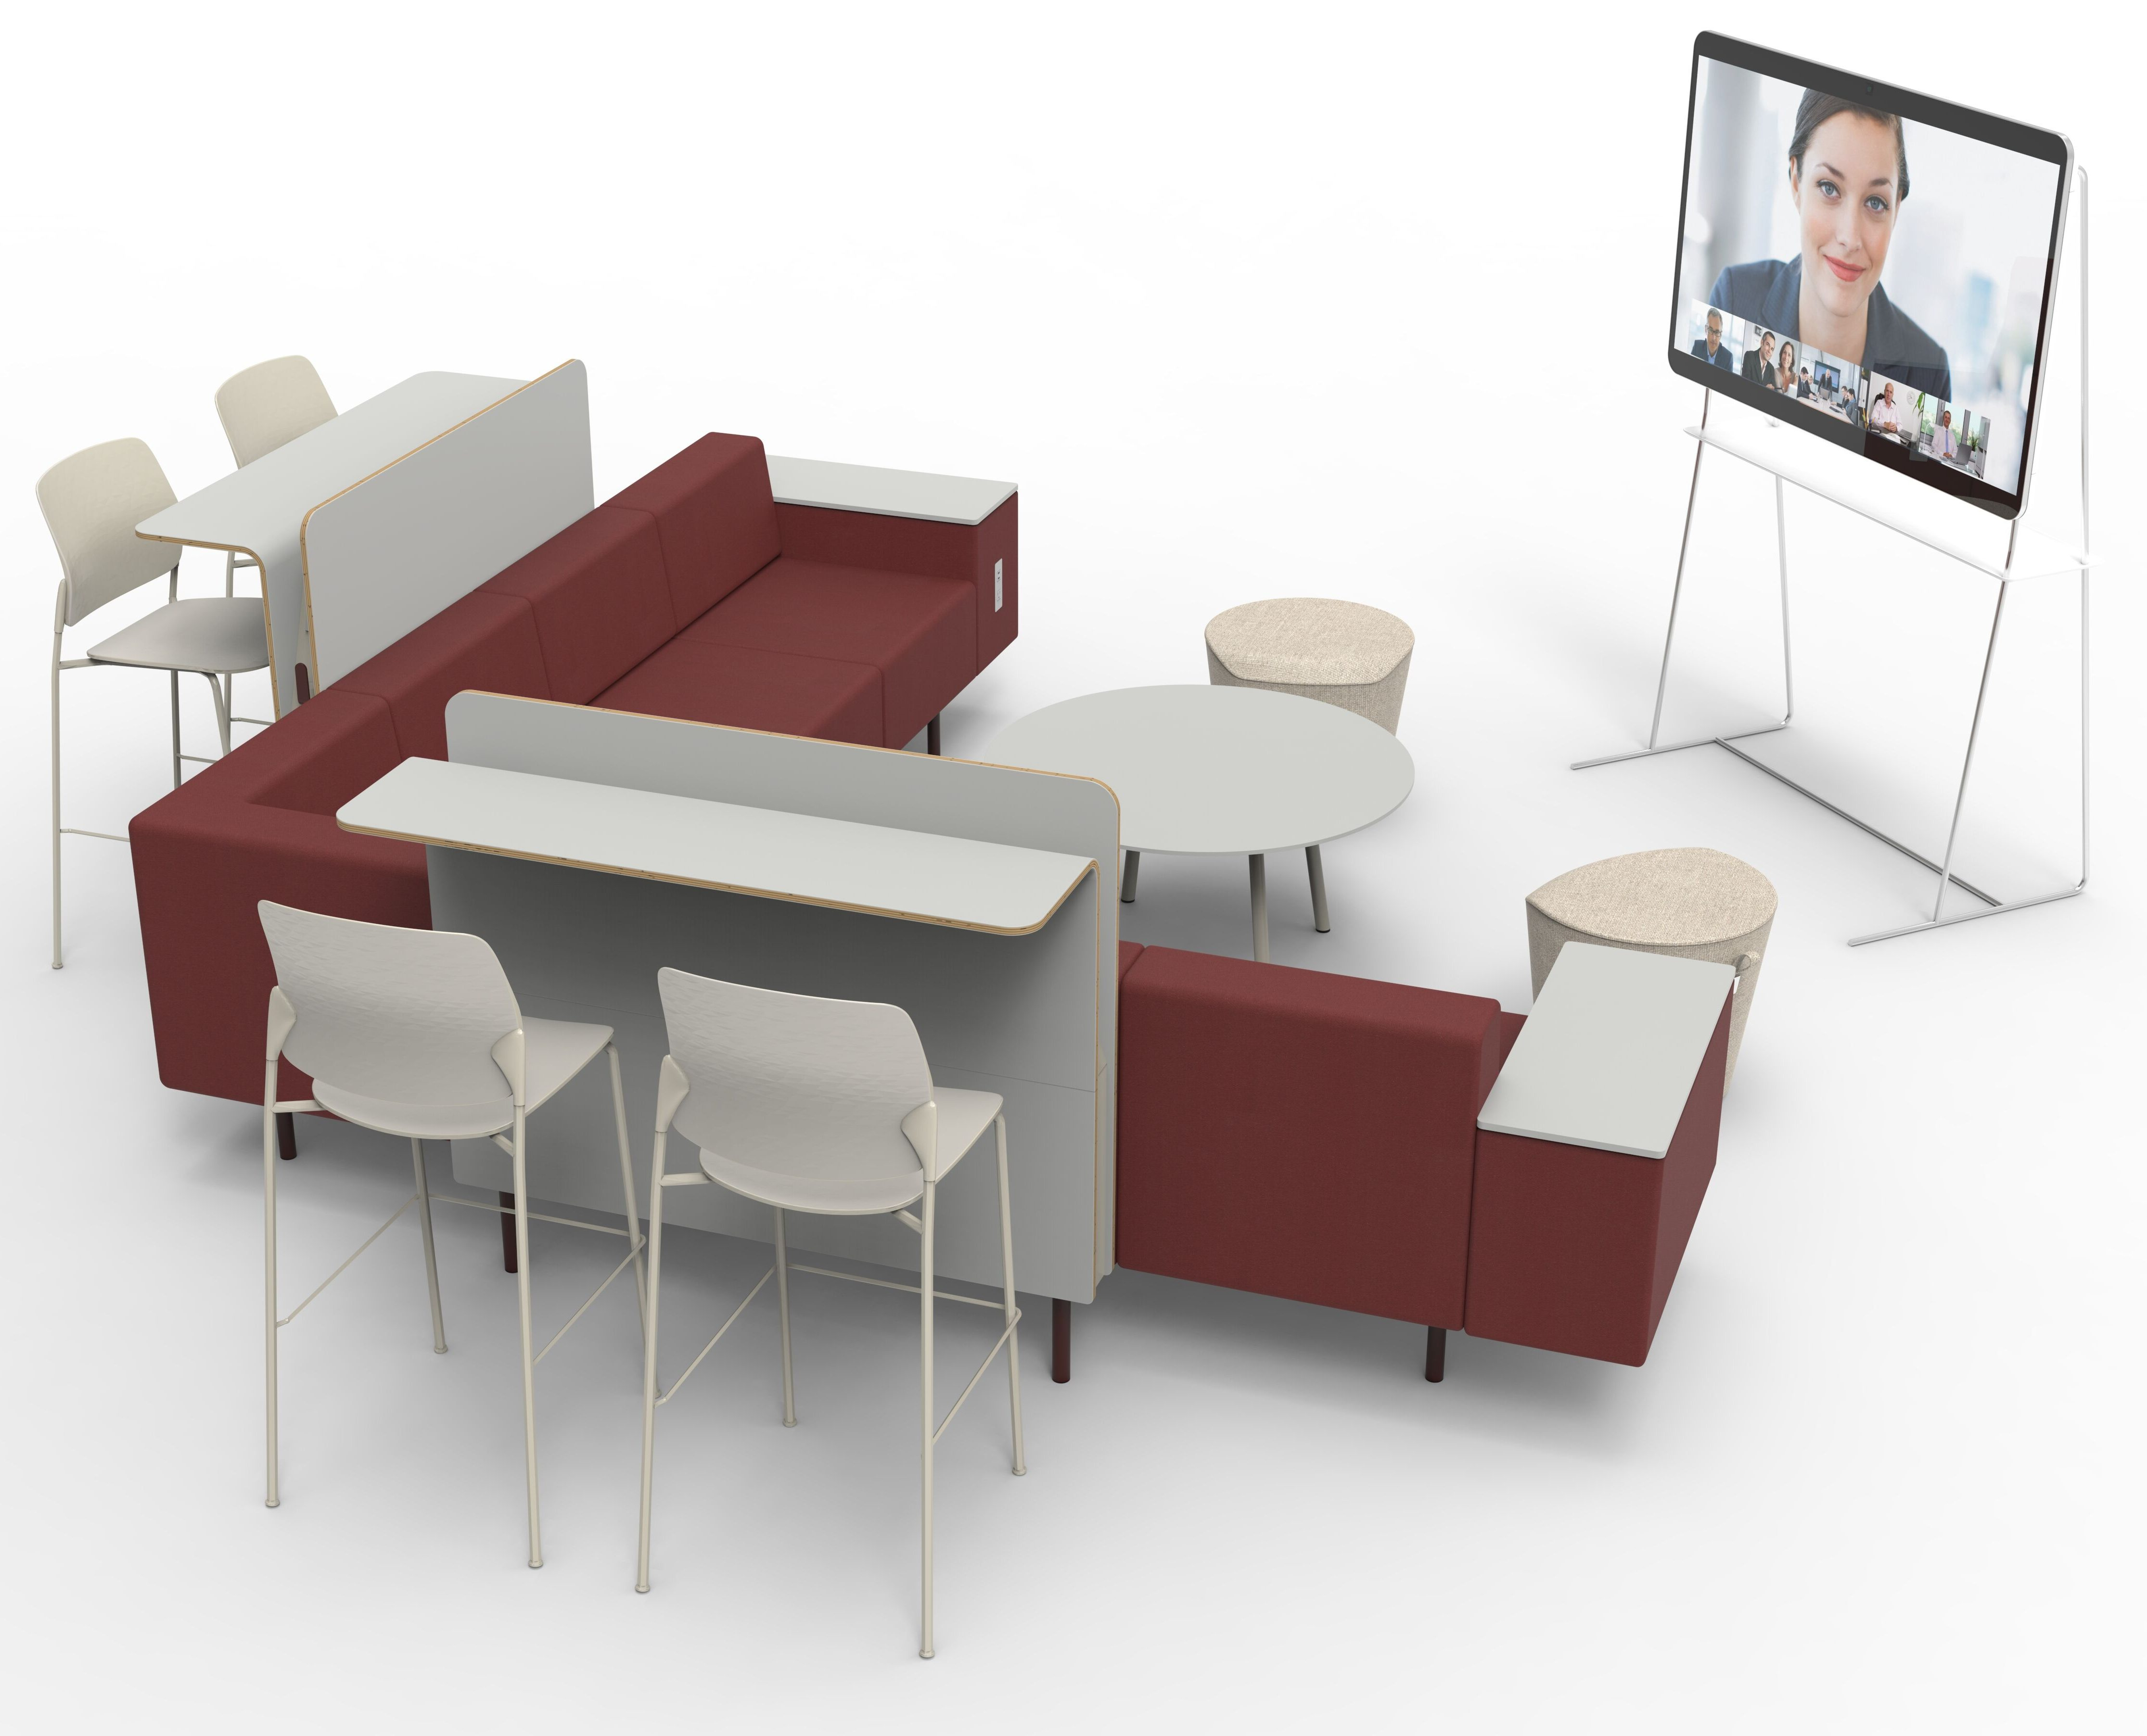 Exchange Phase 3 soft seating system in a meeting configuration